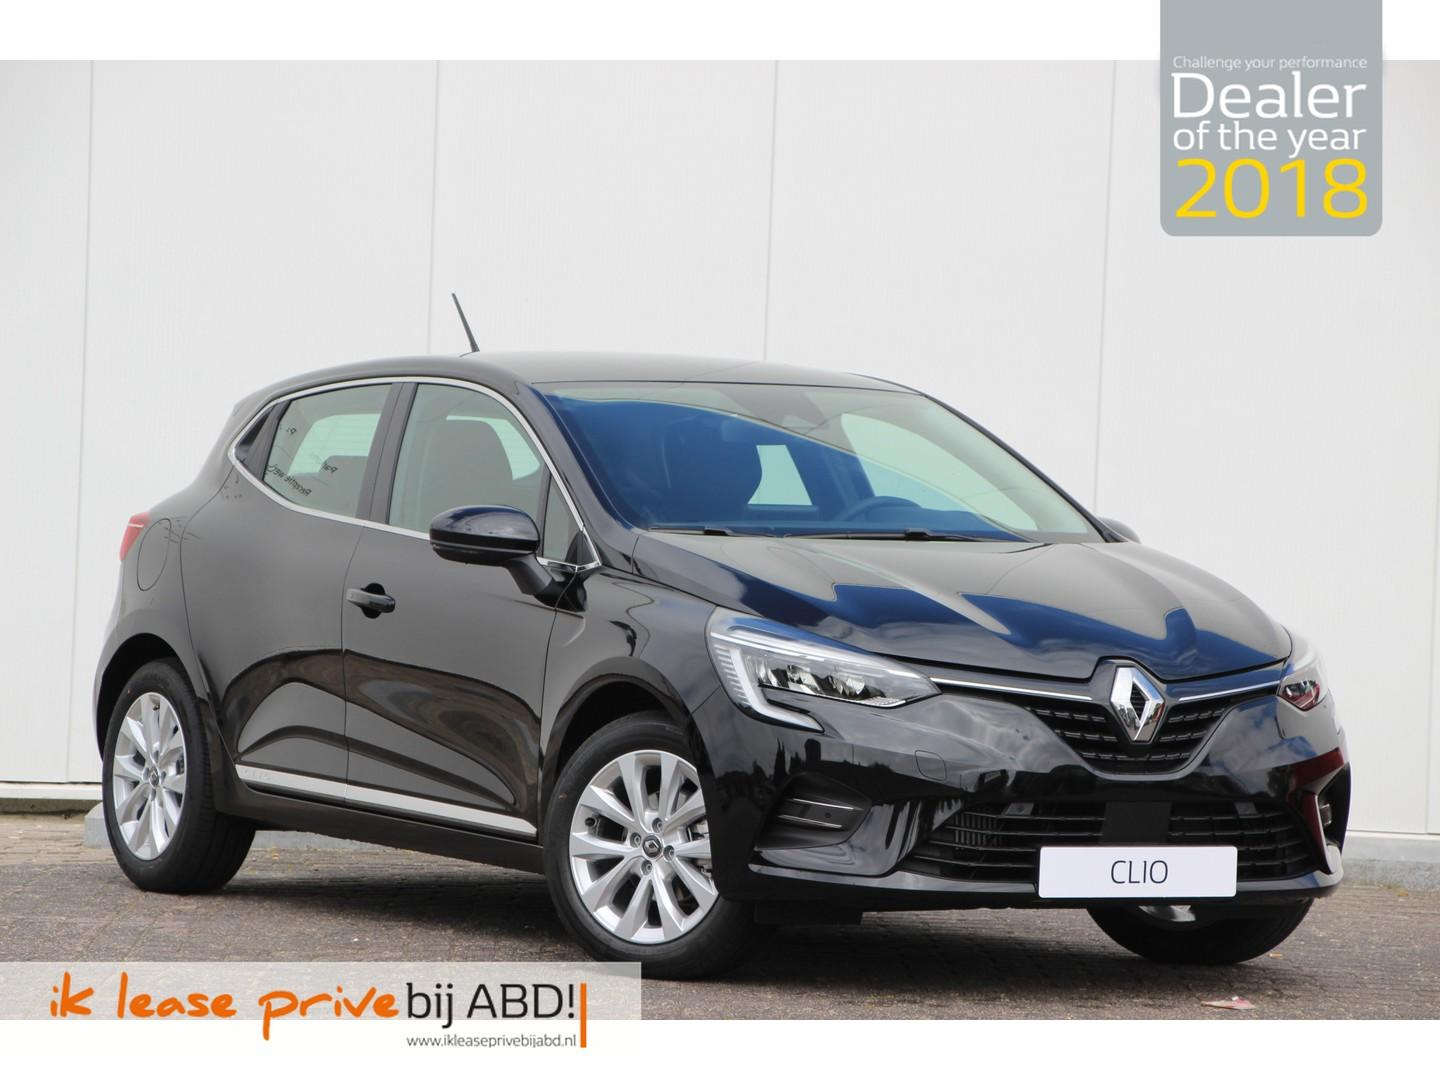 Renault Clio 100 pk tce intens private lease